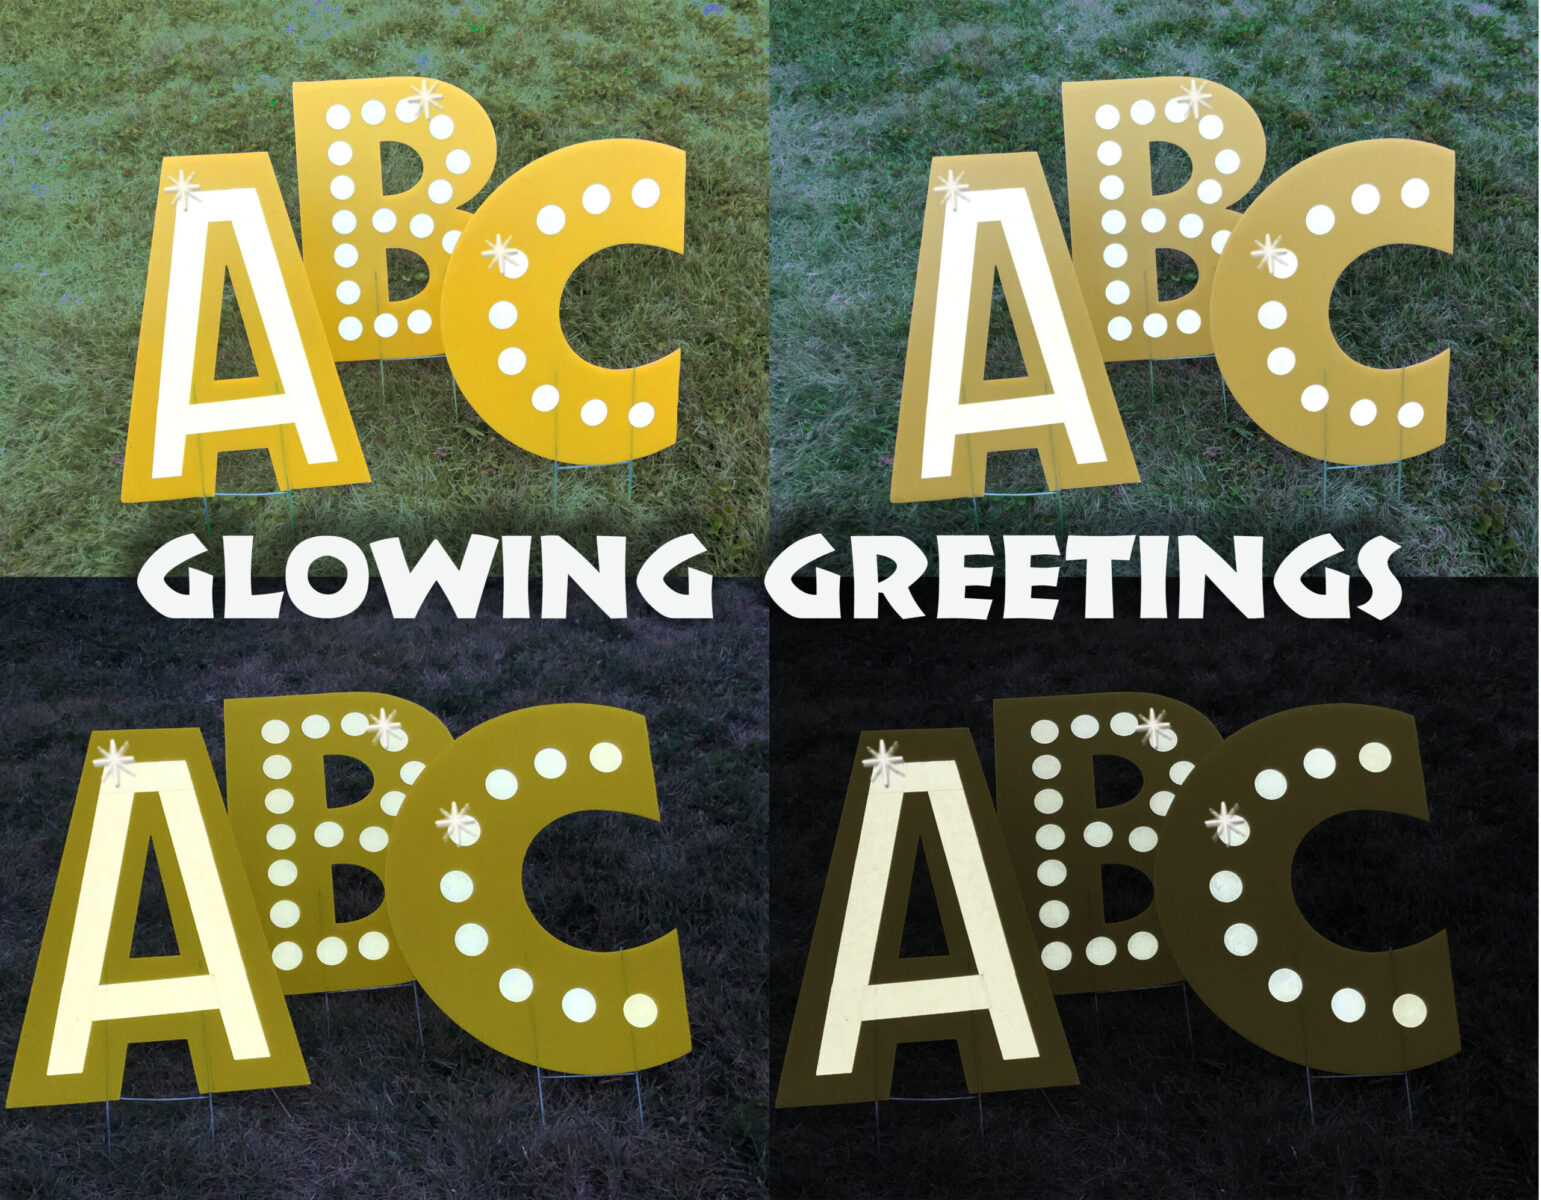 Highly Reflective Vinyl Yard Accents that glow at night